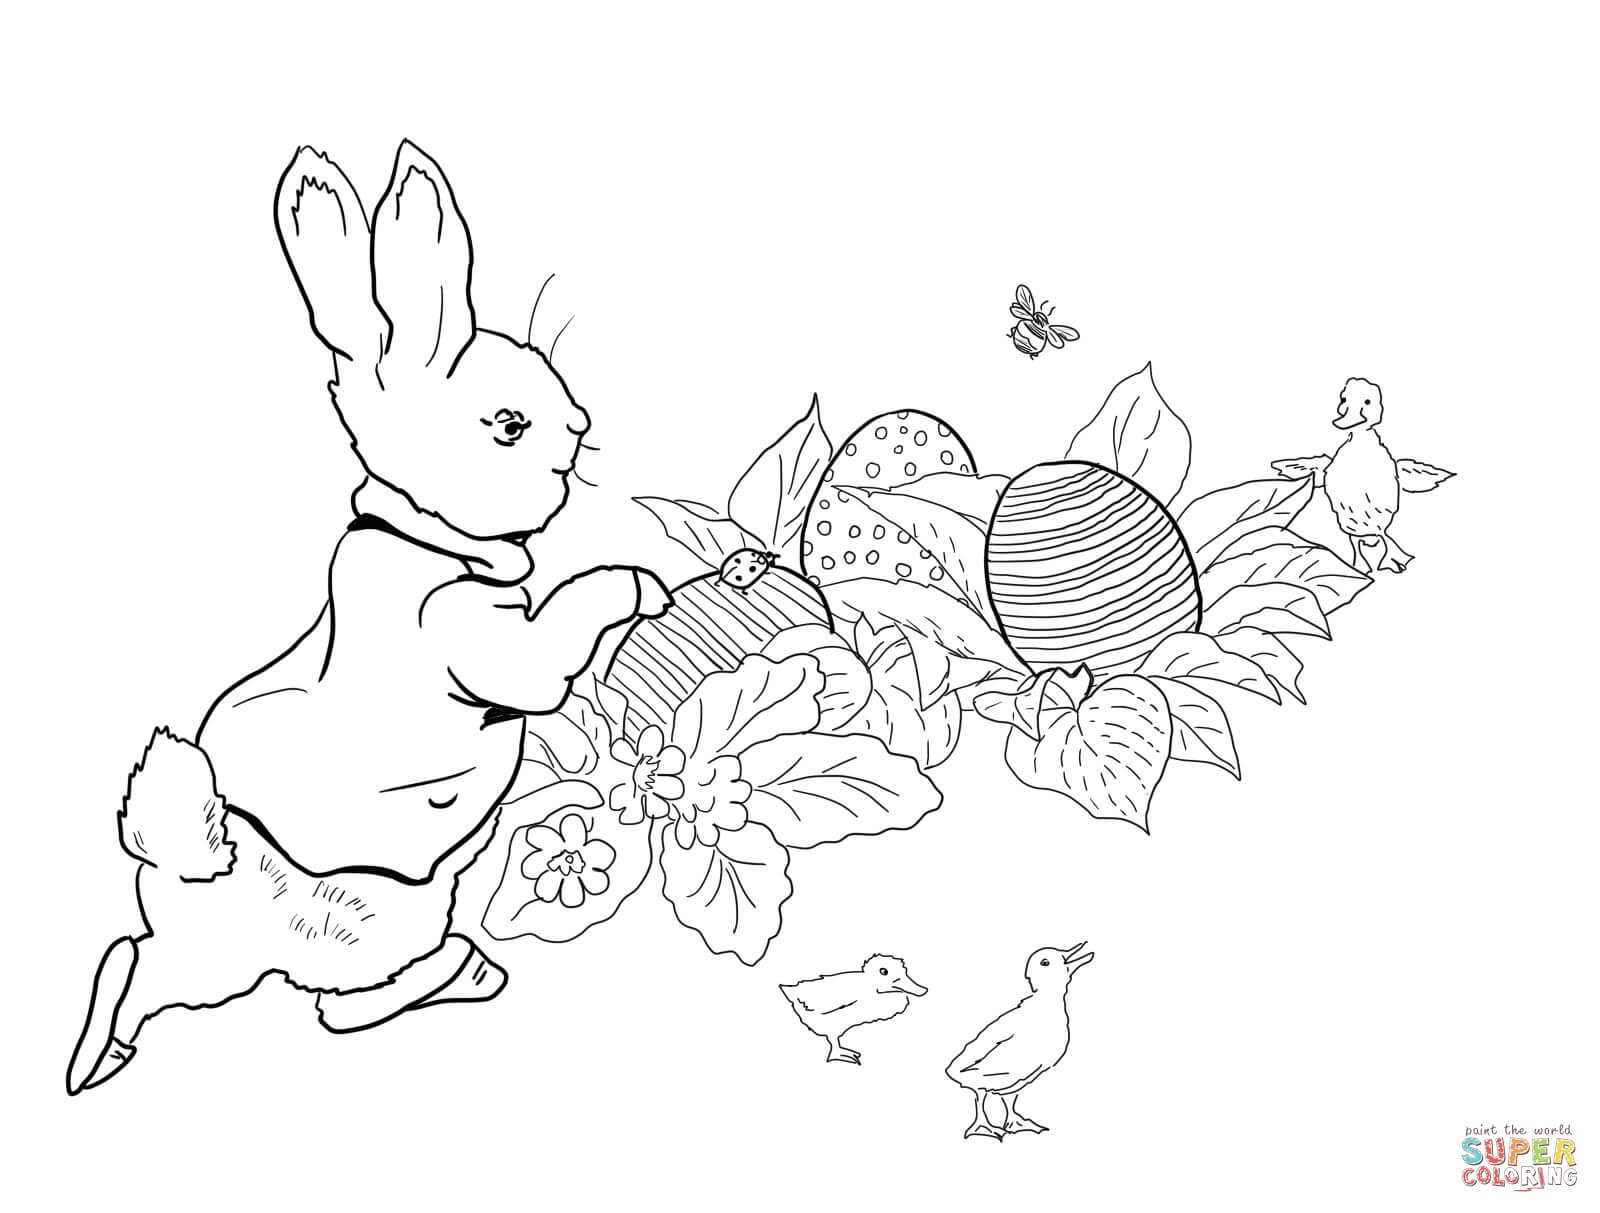 Peter Rabbit Easter Egg Hunt Coloring Page | Free Printable Coloring - Free Printable Peter Rabbit Coloring Pages